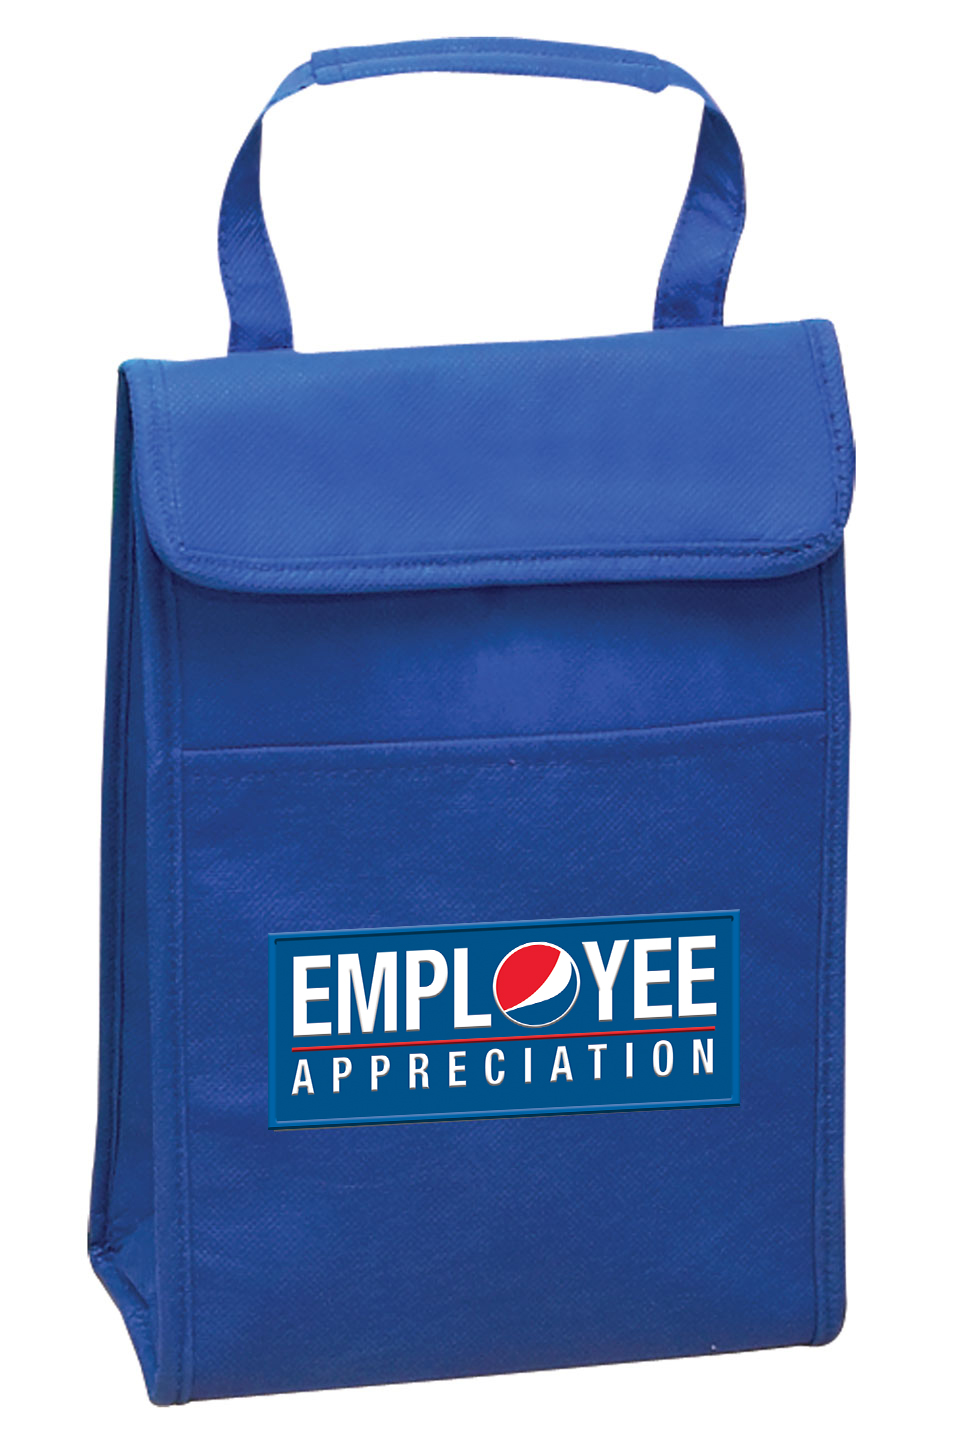 Non Woven Insulated Lunch Cooler - Employee Appreciation